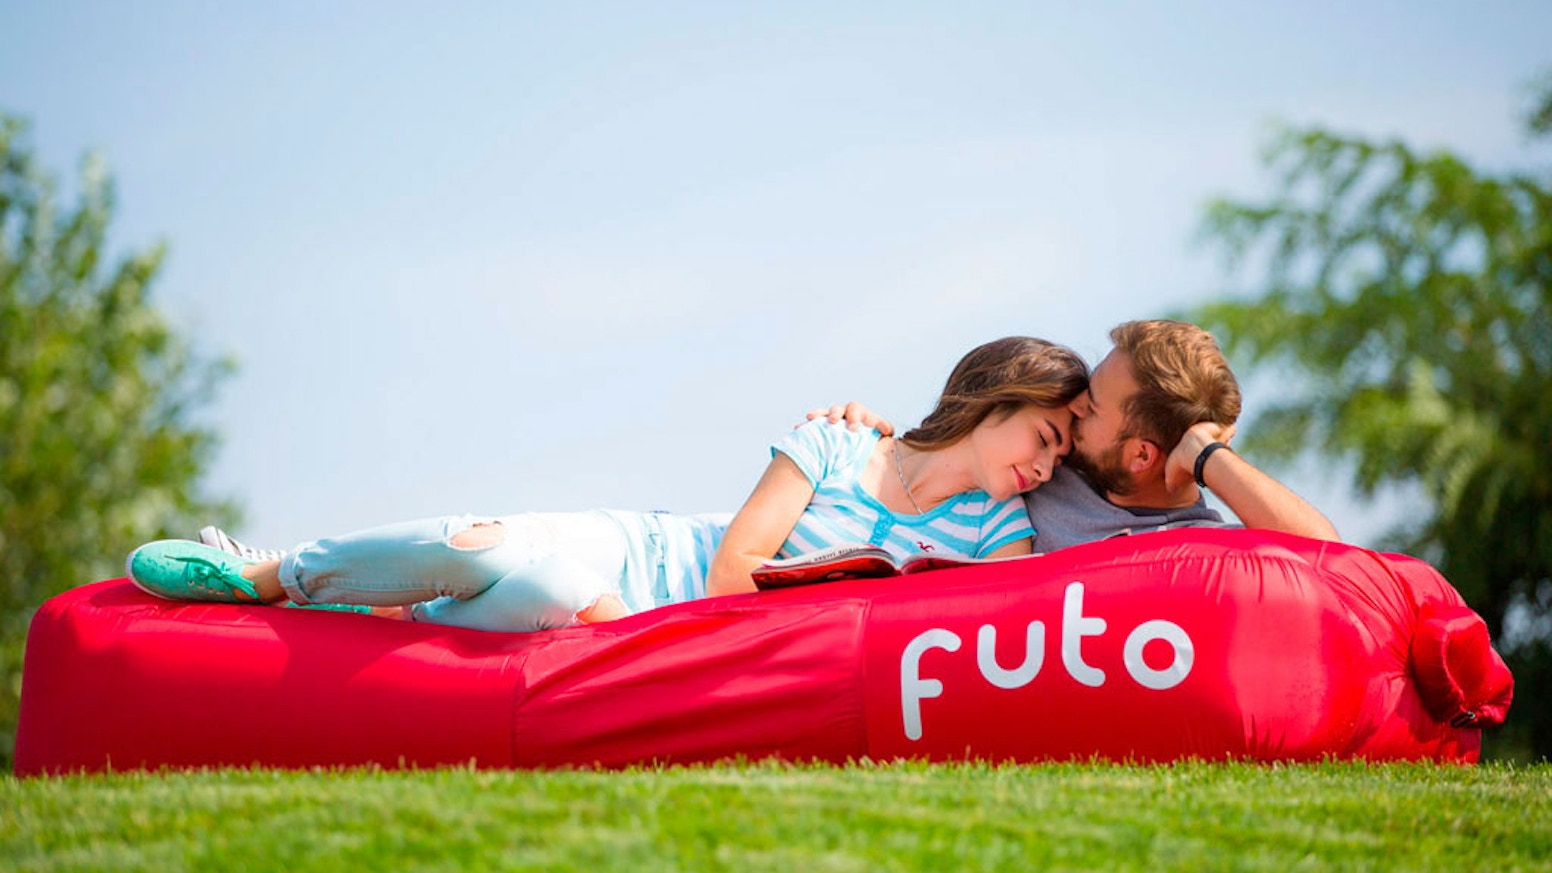 The last air mattress and pillow you will ever need! Easy to inflate, comfortable, durable, colorful and easy to carry!